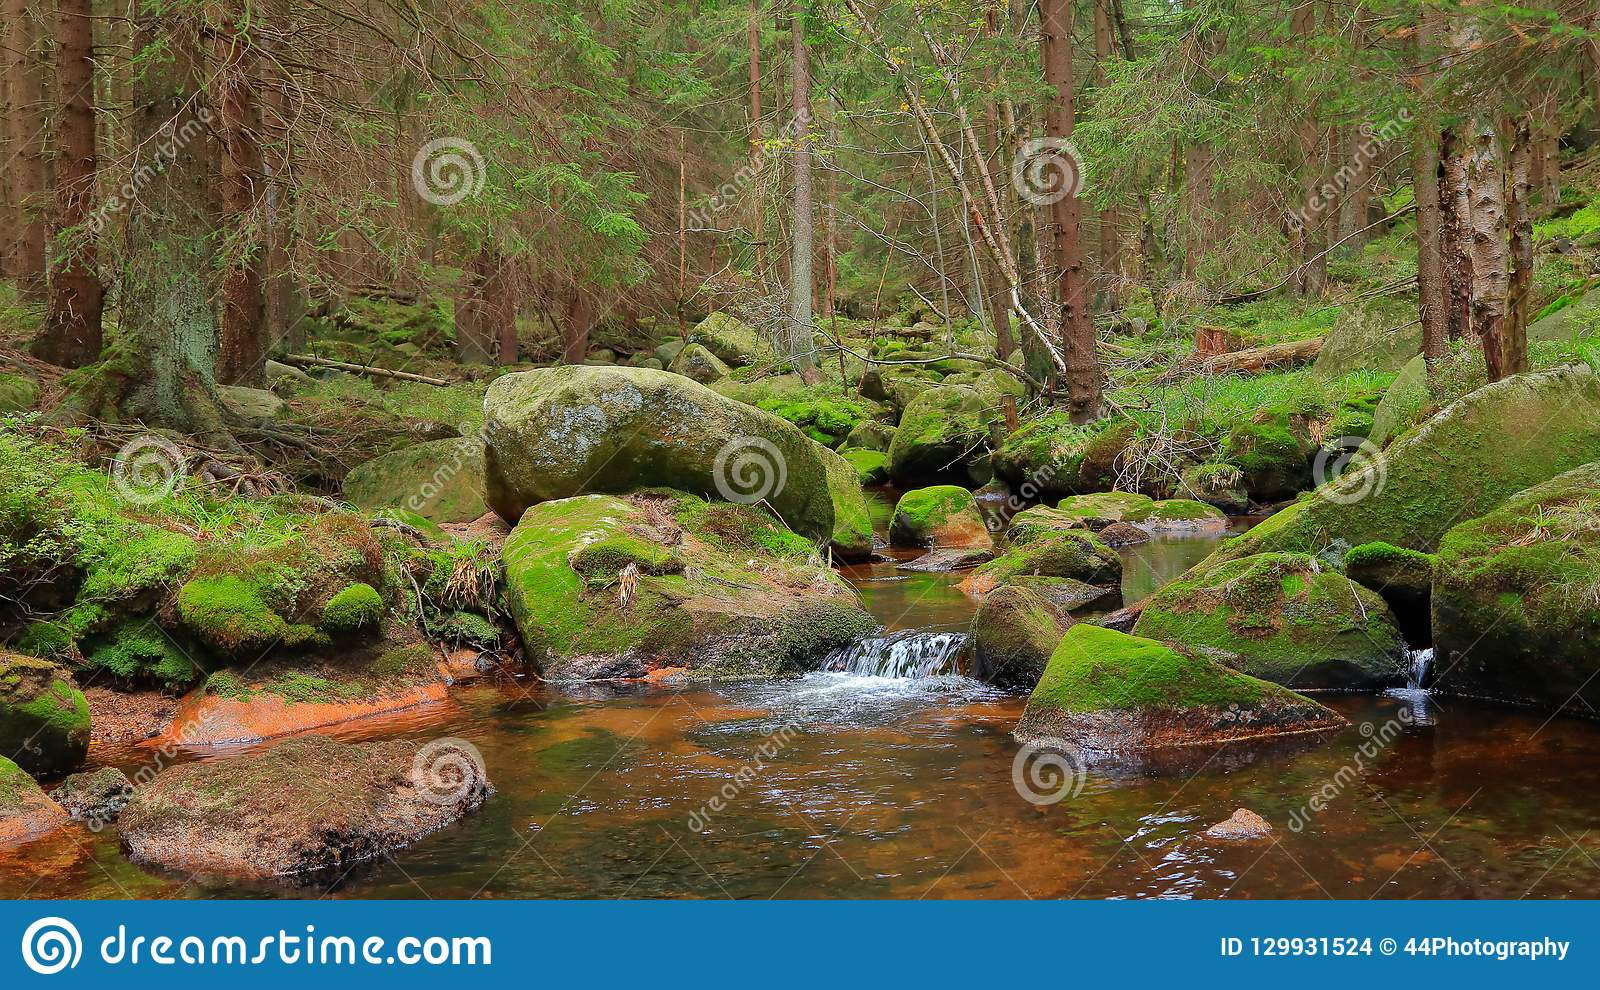 Romantic forest scenery in the Harz mountains, Germany. A tranquil stream and mossy stones in the lush green forest.